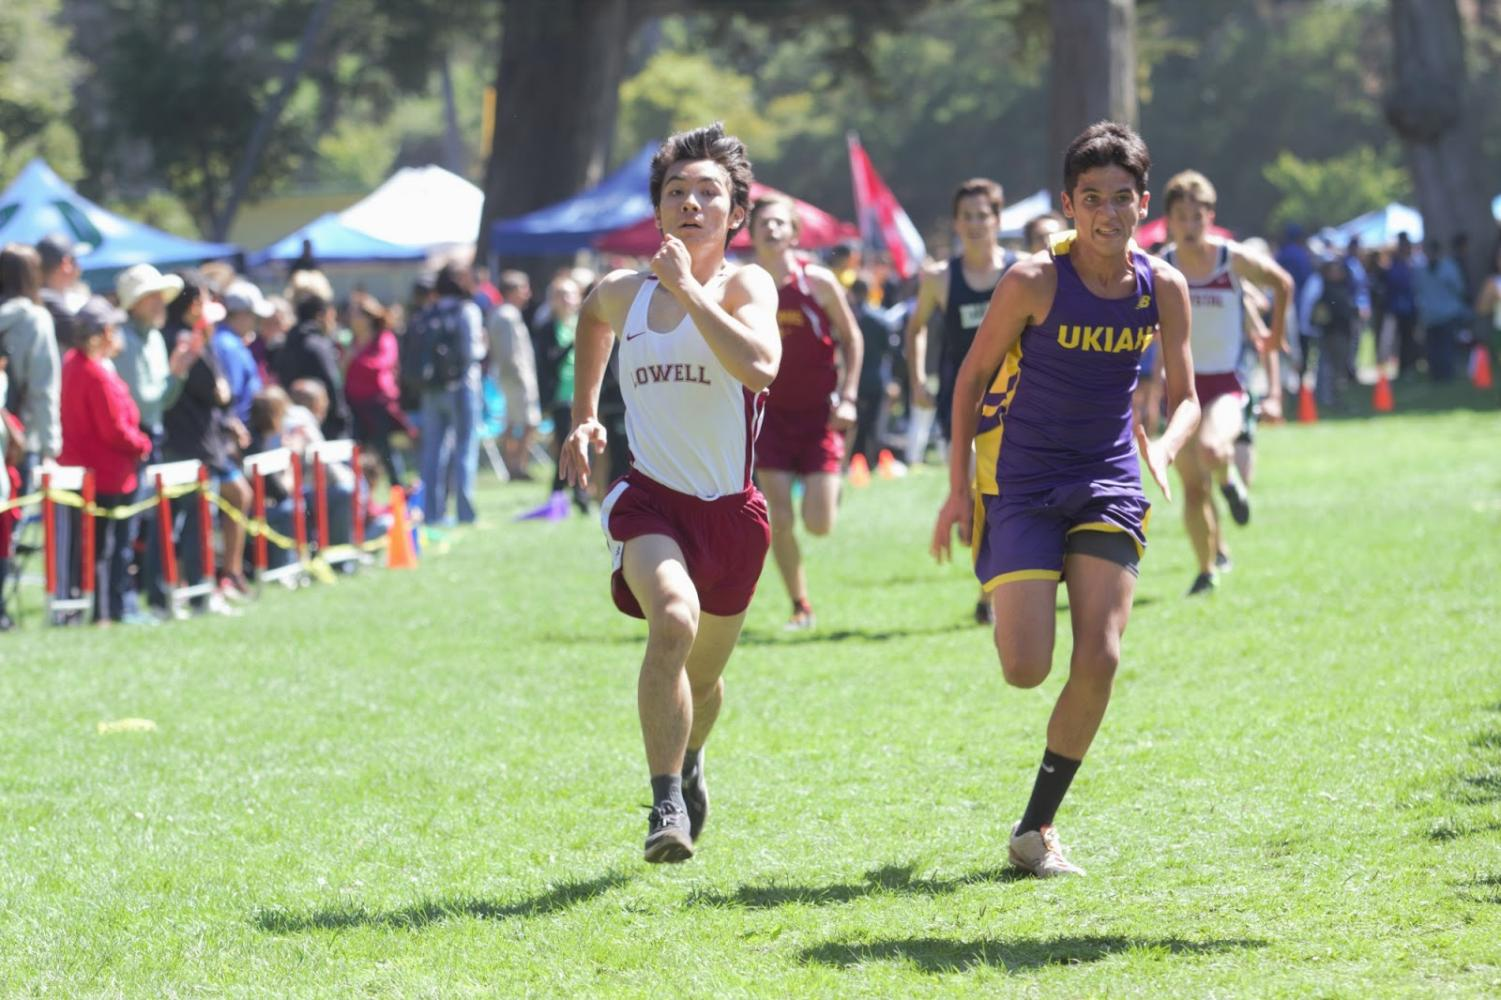 Senior Ryan Lee hustles to the finish line in heat 1 of the JV boys race at the Lowell Cross Country Invitational on Sept. 8 at Speedway Meadow in Golden Gate Park. He finished in 29th place out of 272 runners in his heat.